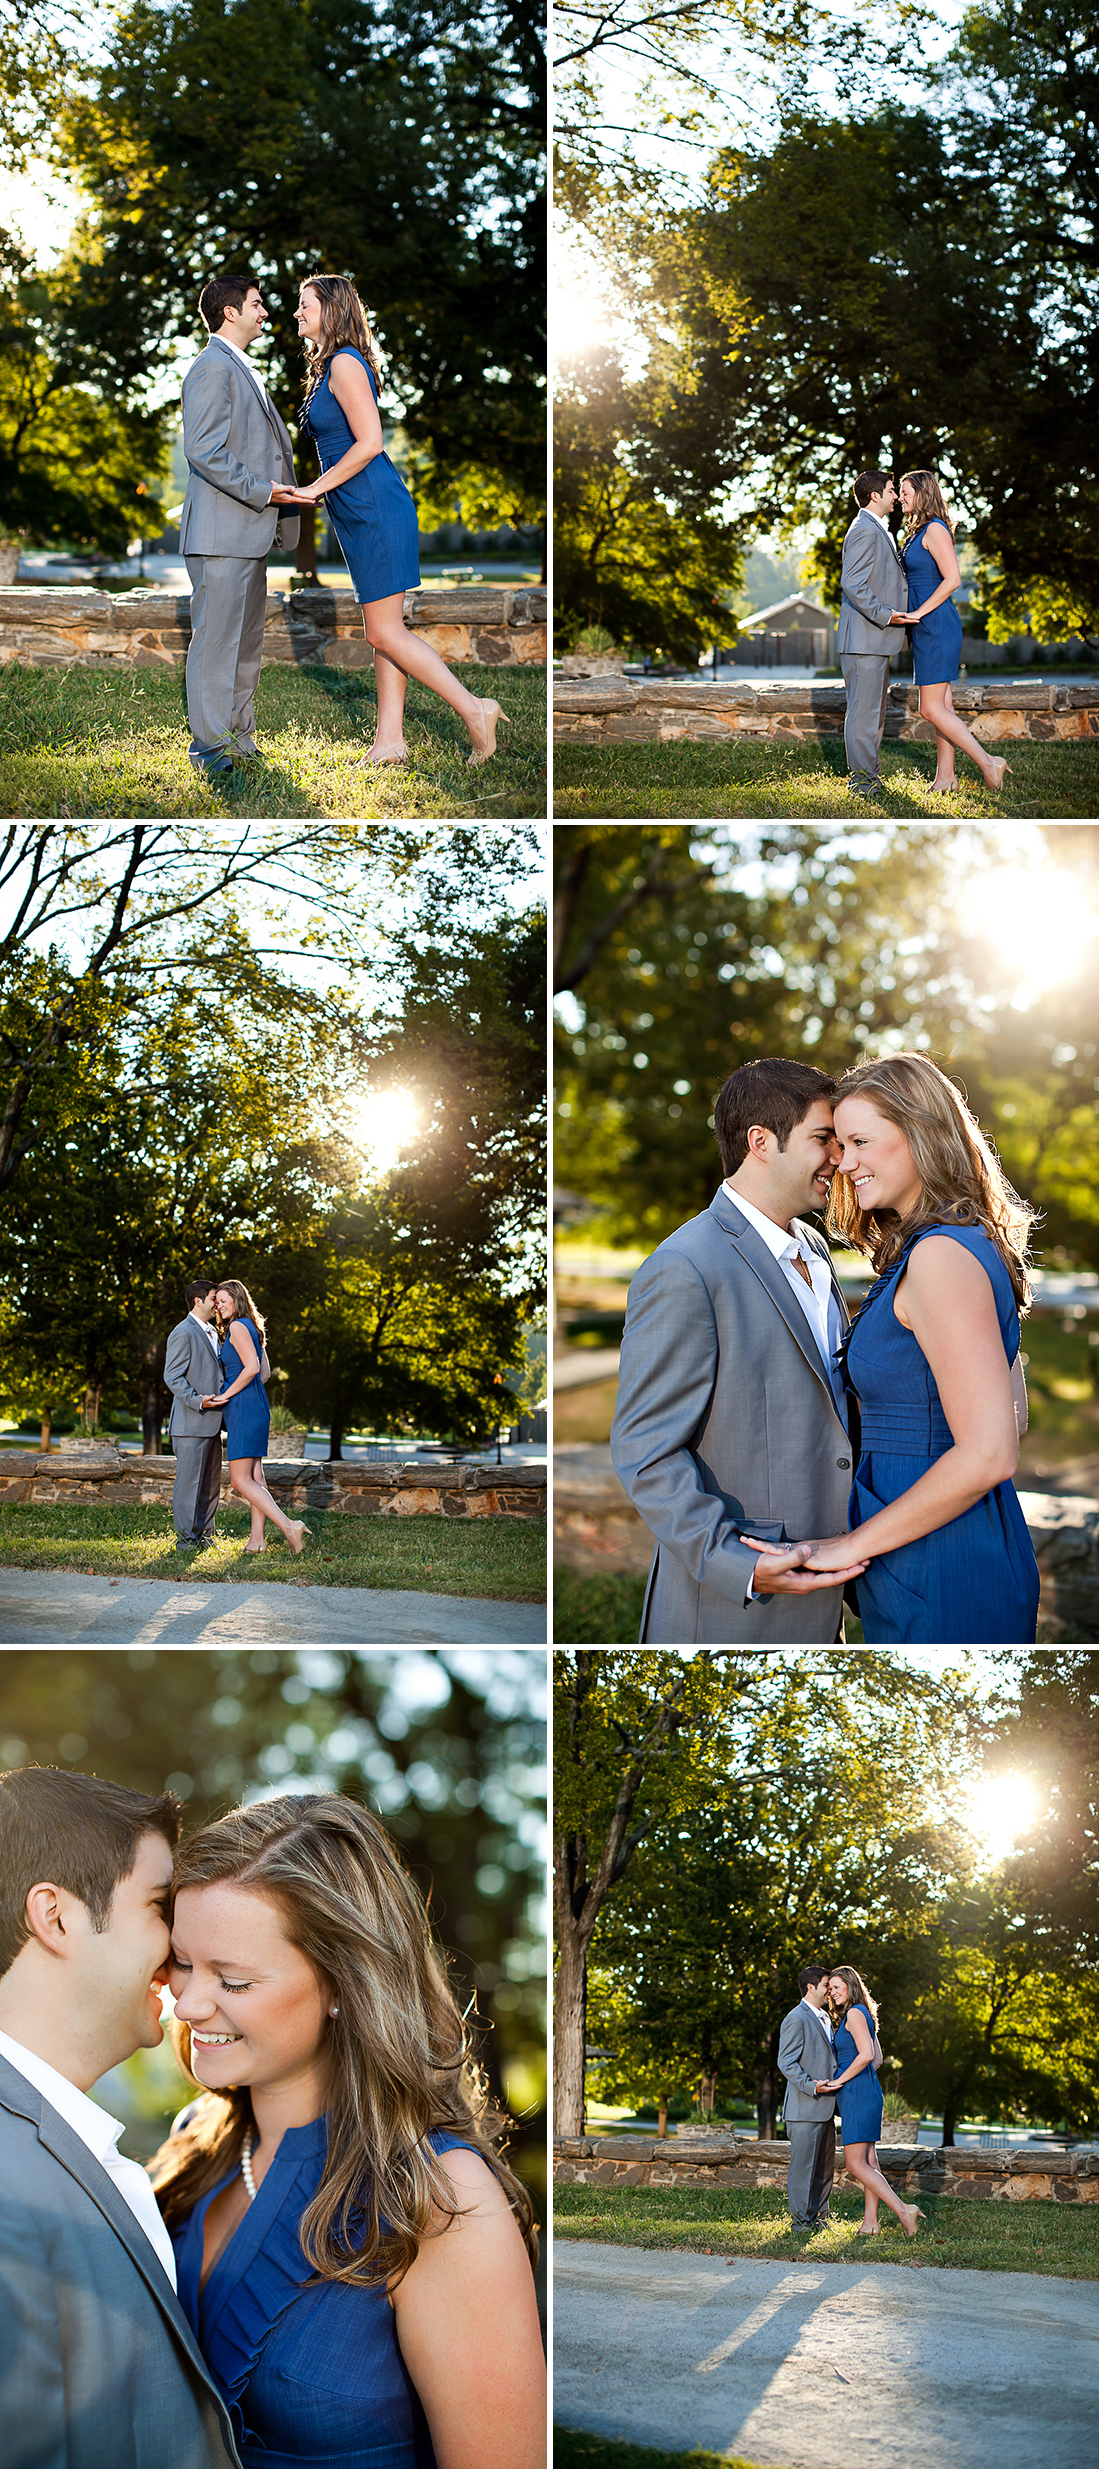 09-sunrise-engagement-at-piedmont-park.jpg